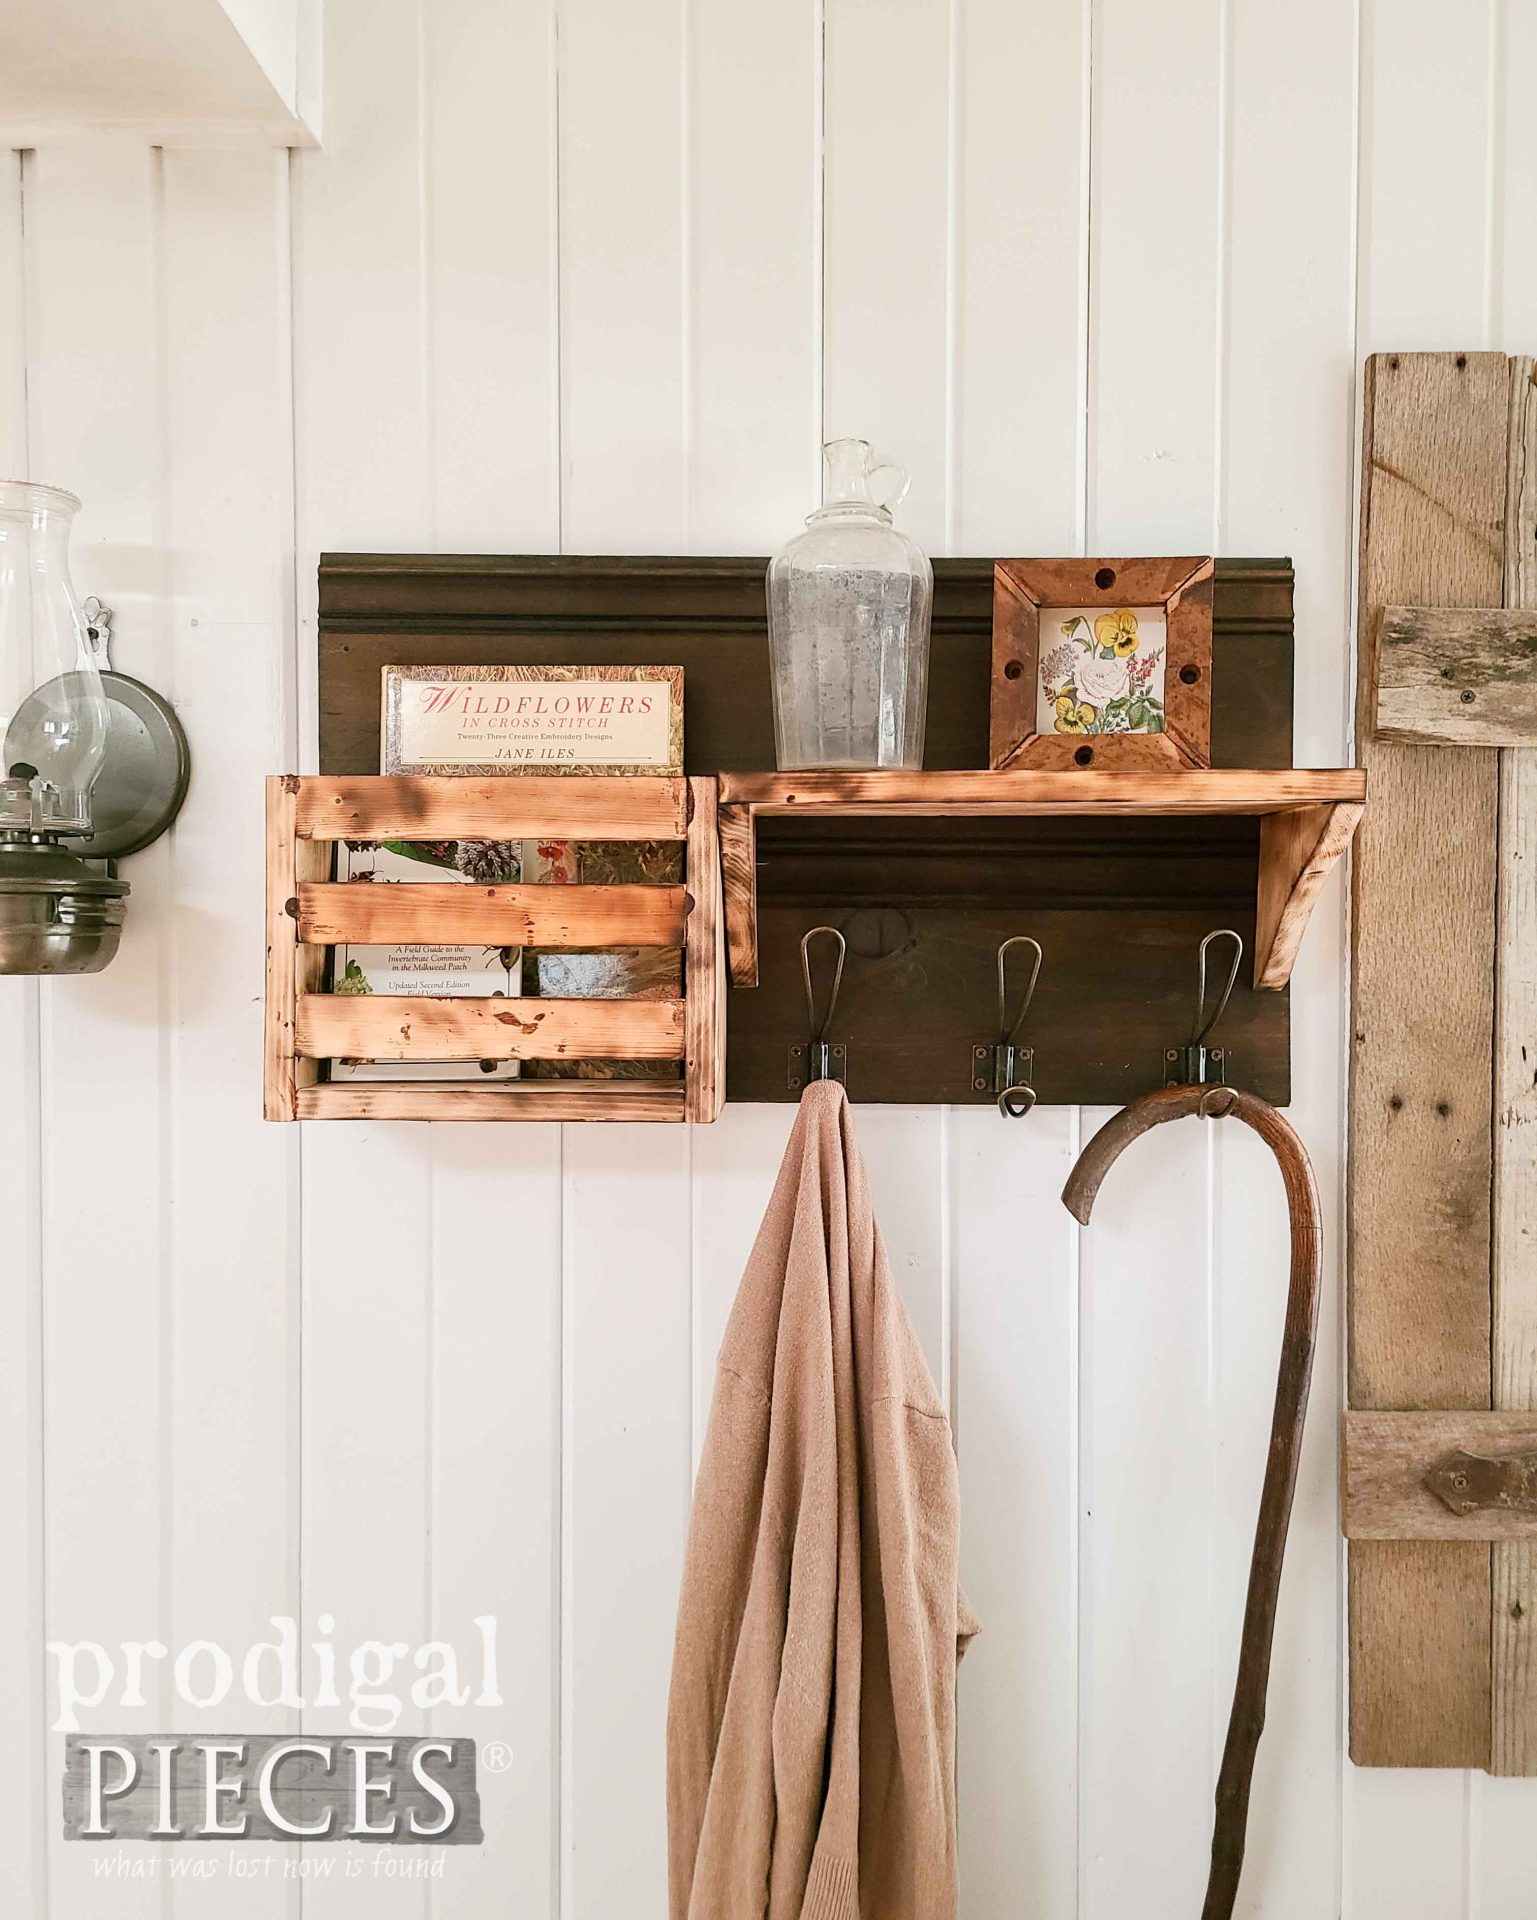 Farmhouse Coat Rack Entry Shelf with DIY Torched Wood Tutorial by Larissa of Prodigal Pieces | prodigalpieces.com #prodigalpieces #farmhouse #diy #woodworking #tutorial #tools